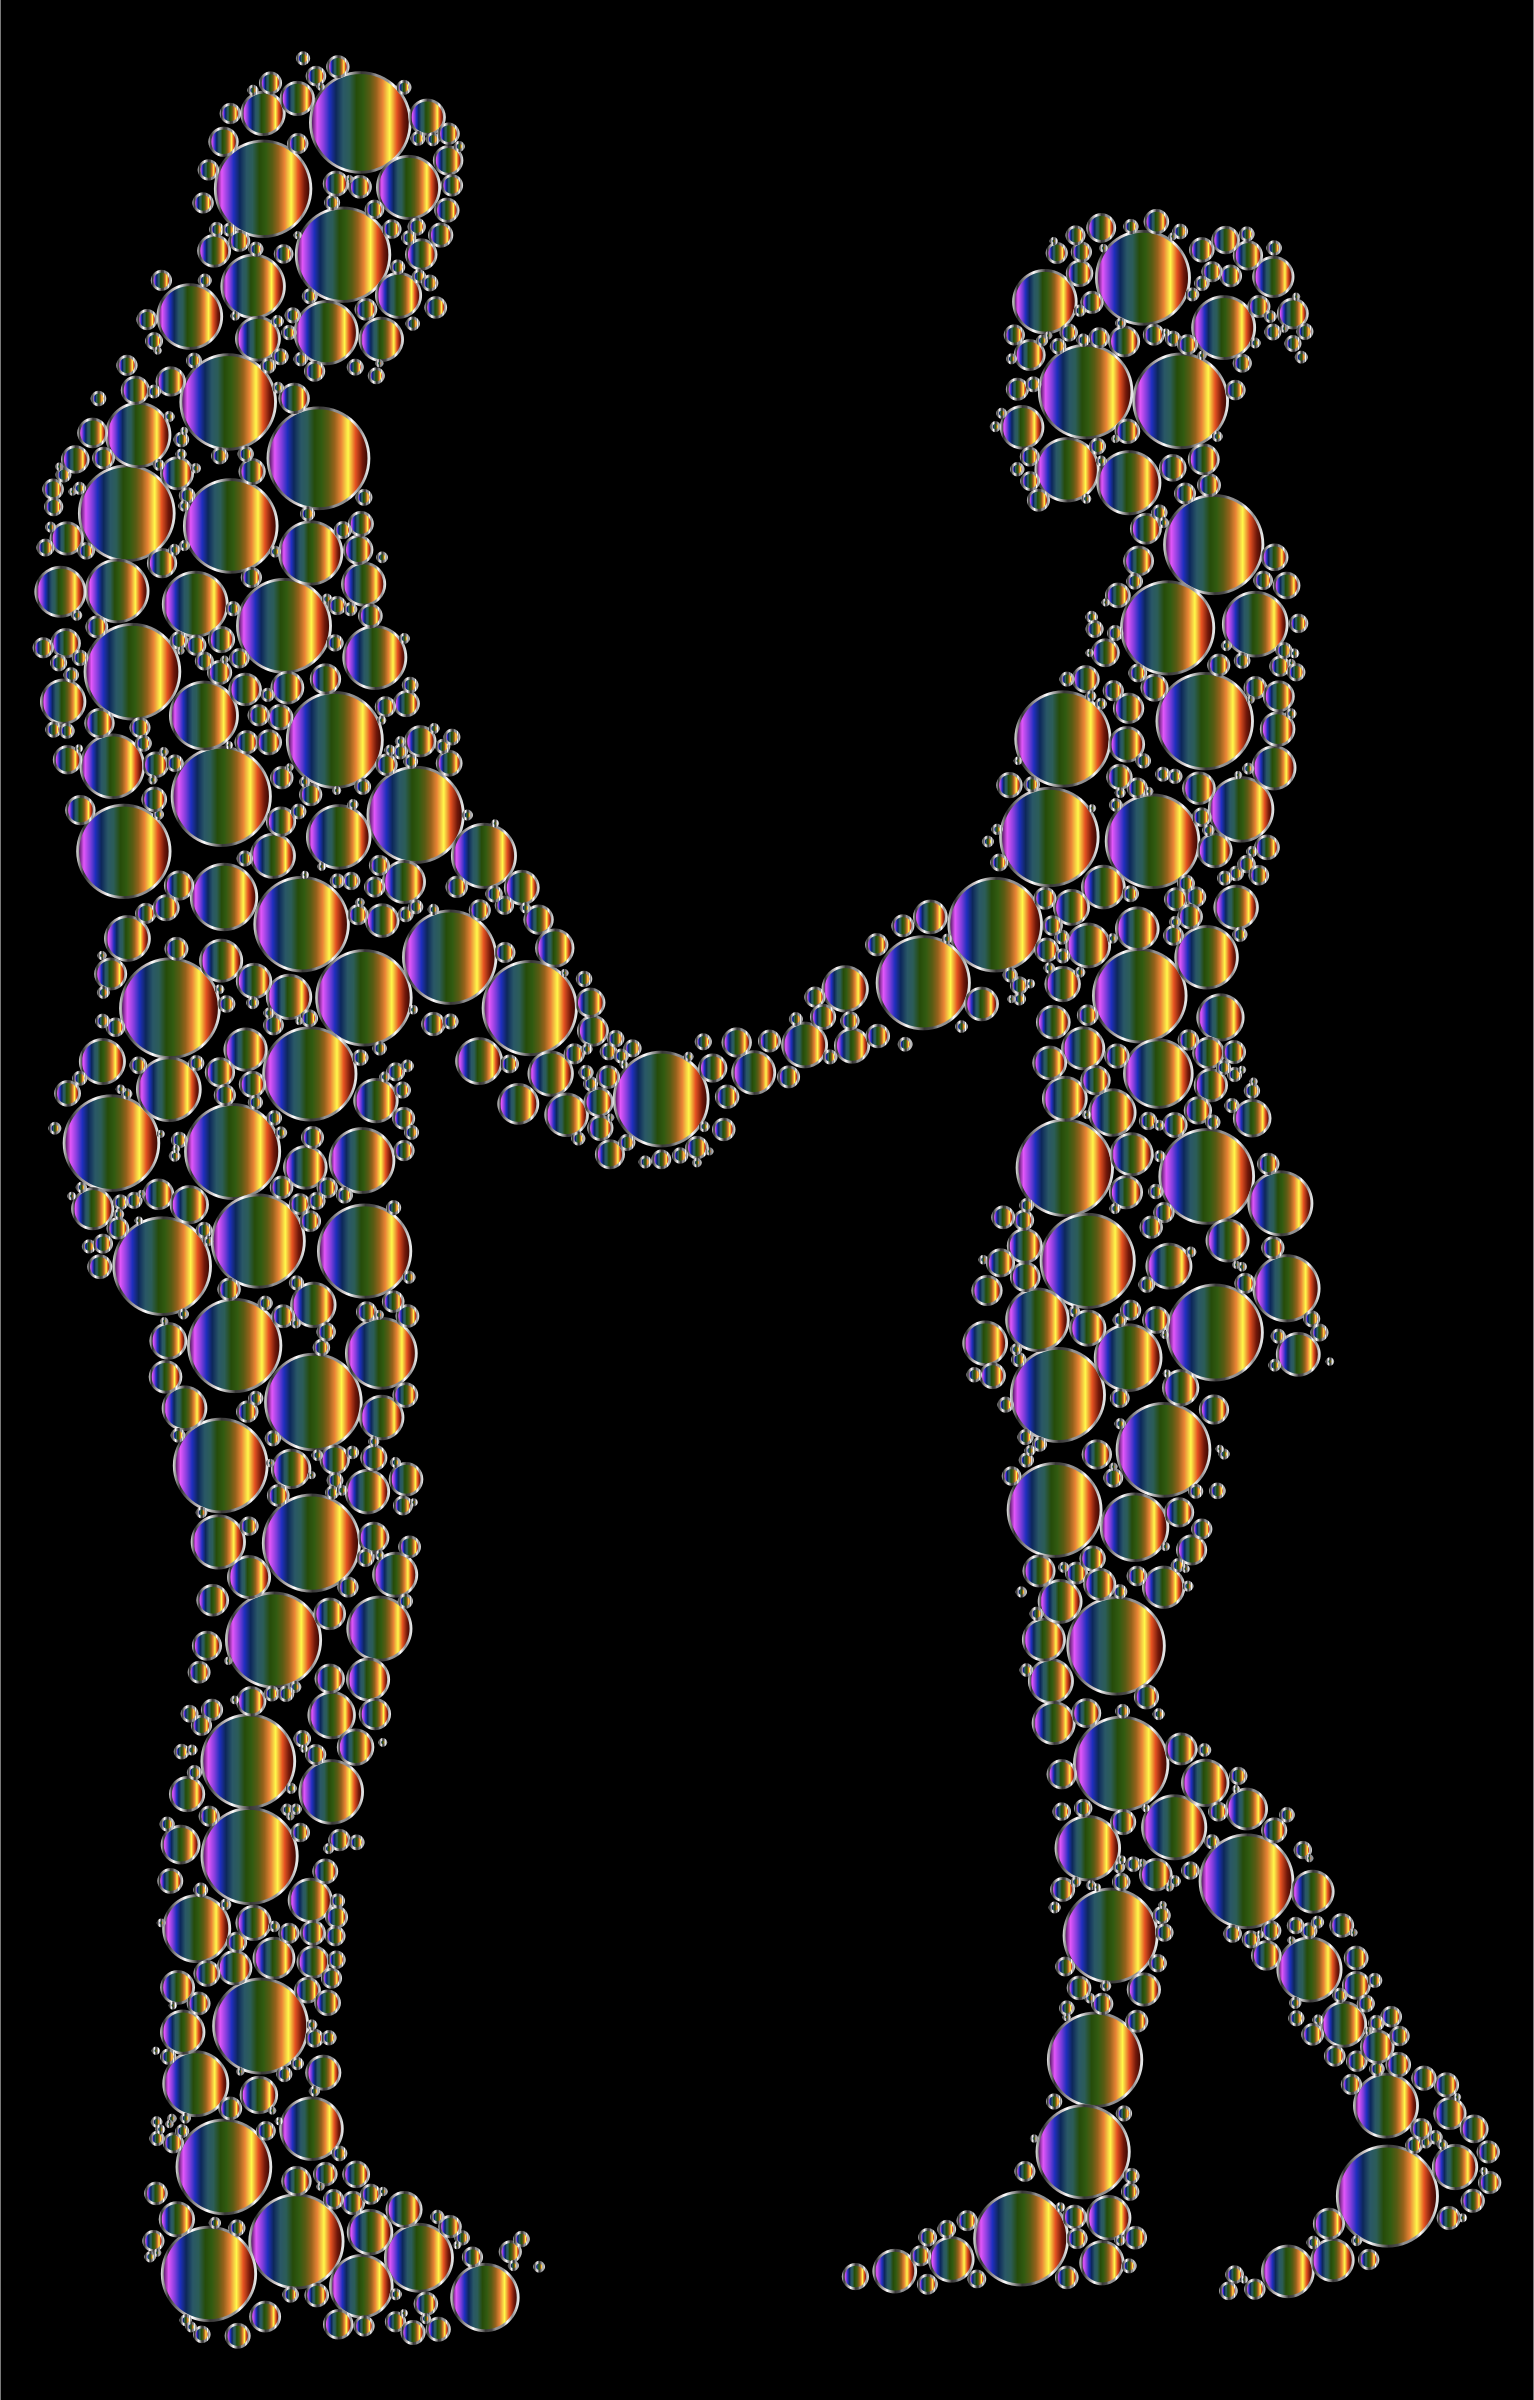 Prismatic Circles Couple Silhouette 6 8 by GDJ